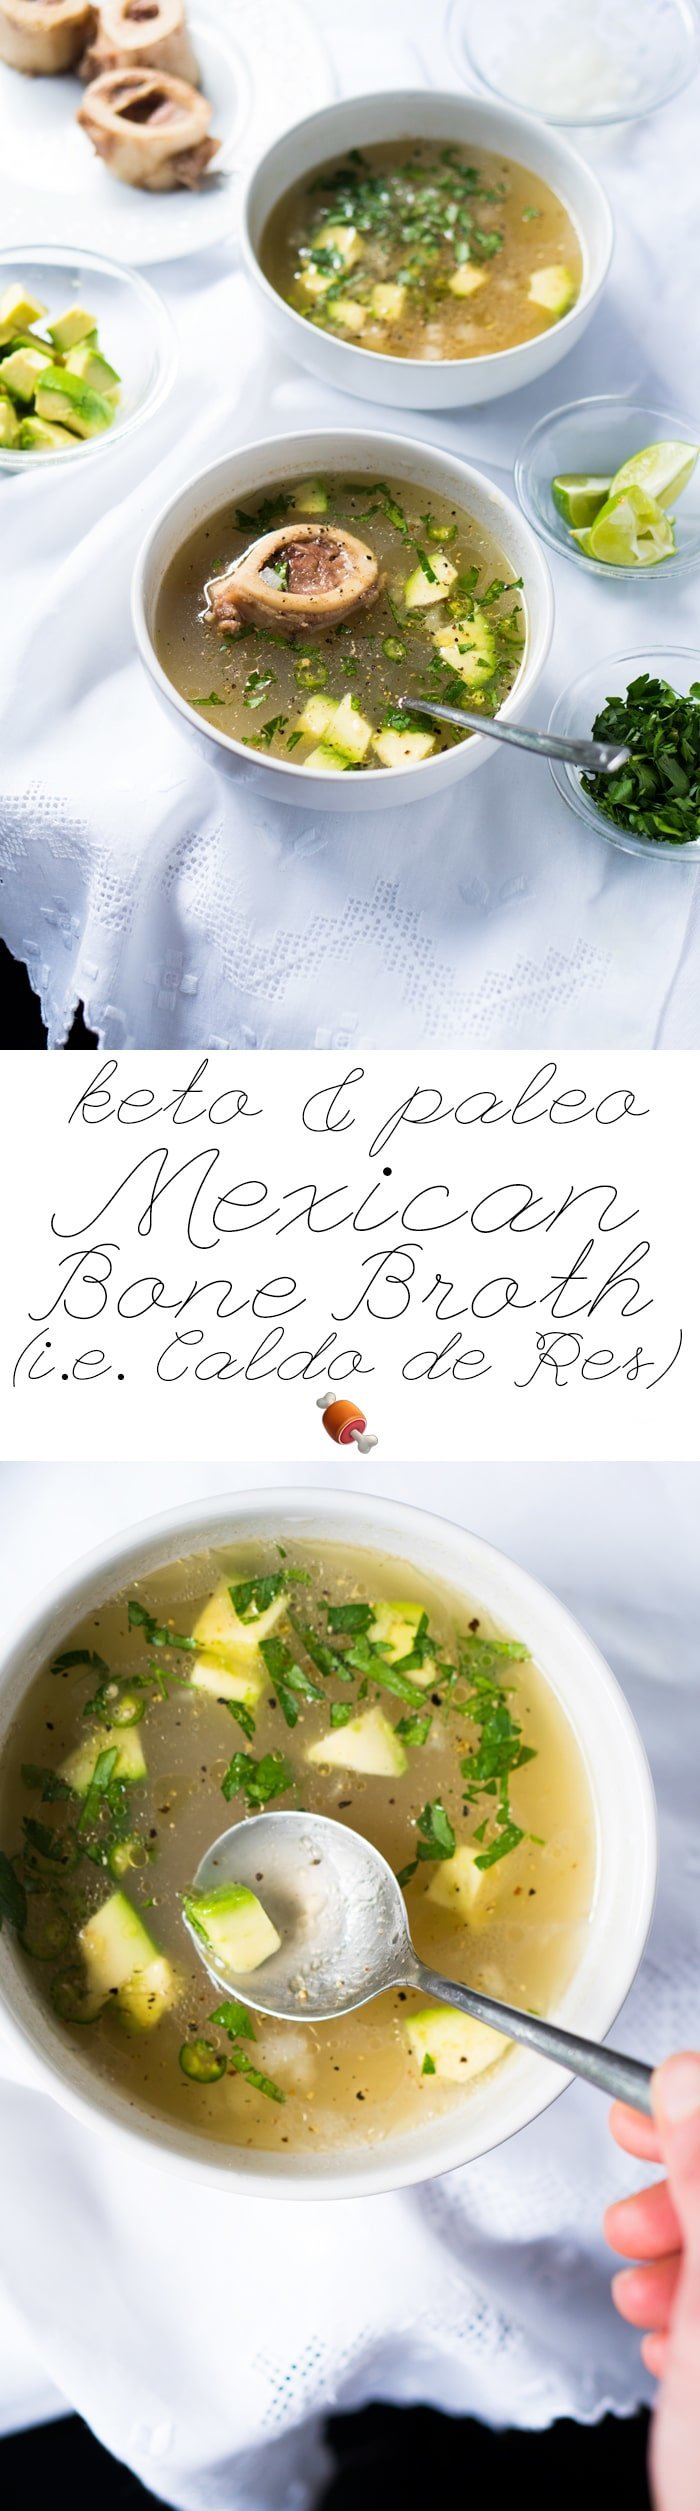 Paleo & Keto Mexican Bone Broth (i.e. Caldo de Res) 🍖